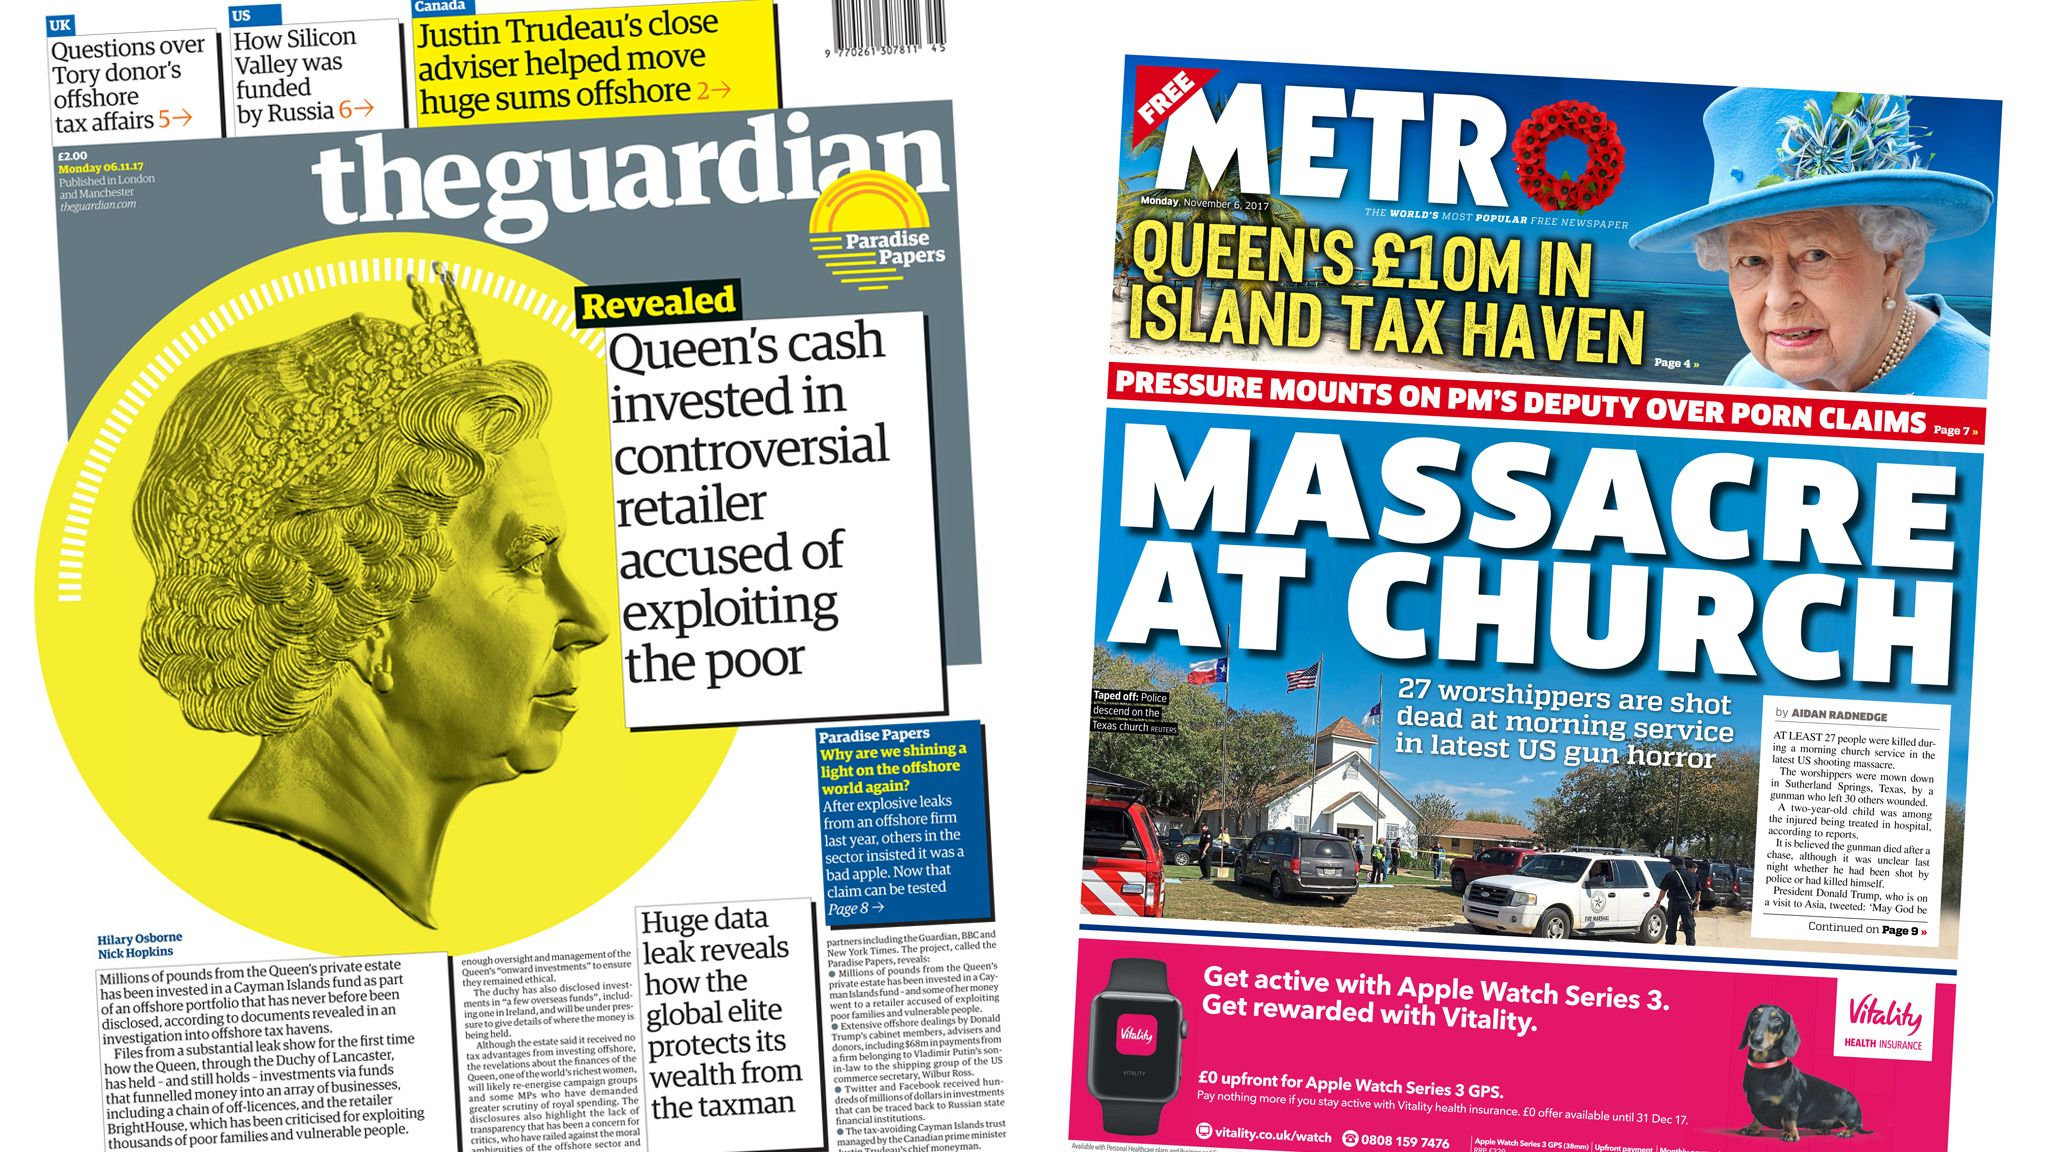 Guardian and Metro front pages